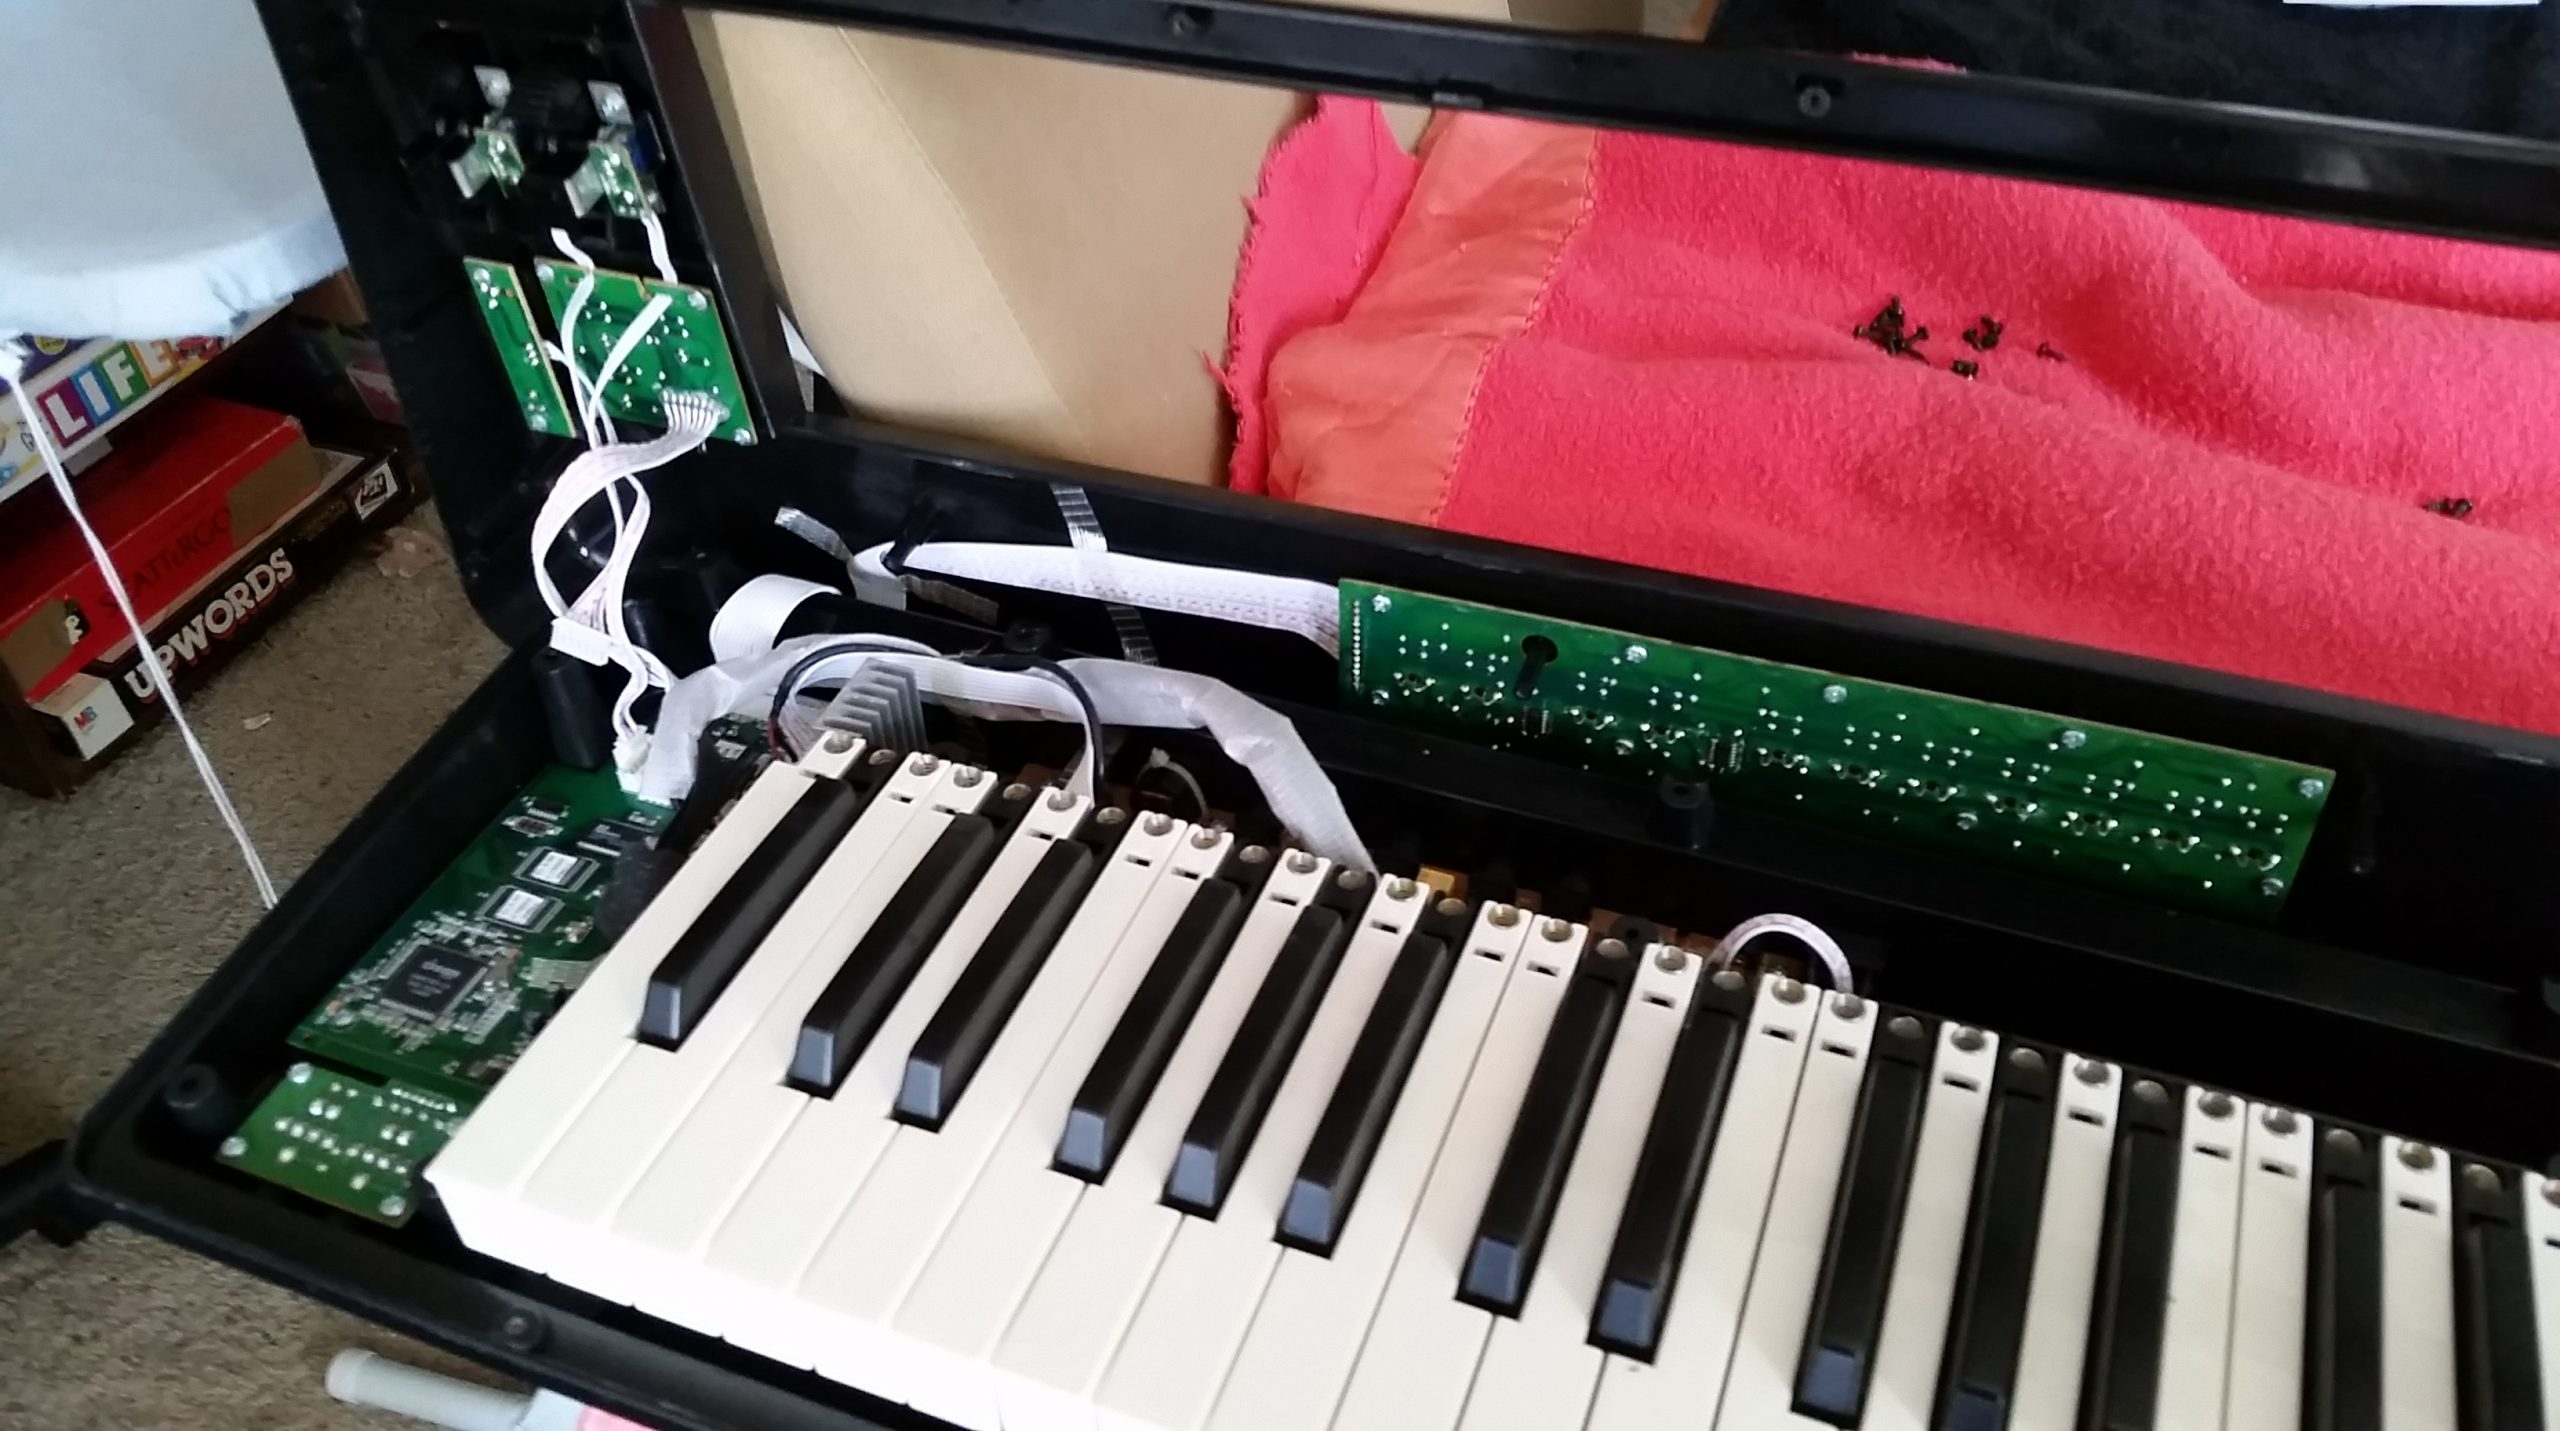 Check Out This Keyboard Repair!   Collin College Fall 2015 Intended For Collin College Spring Break